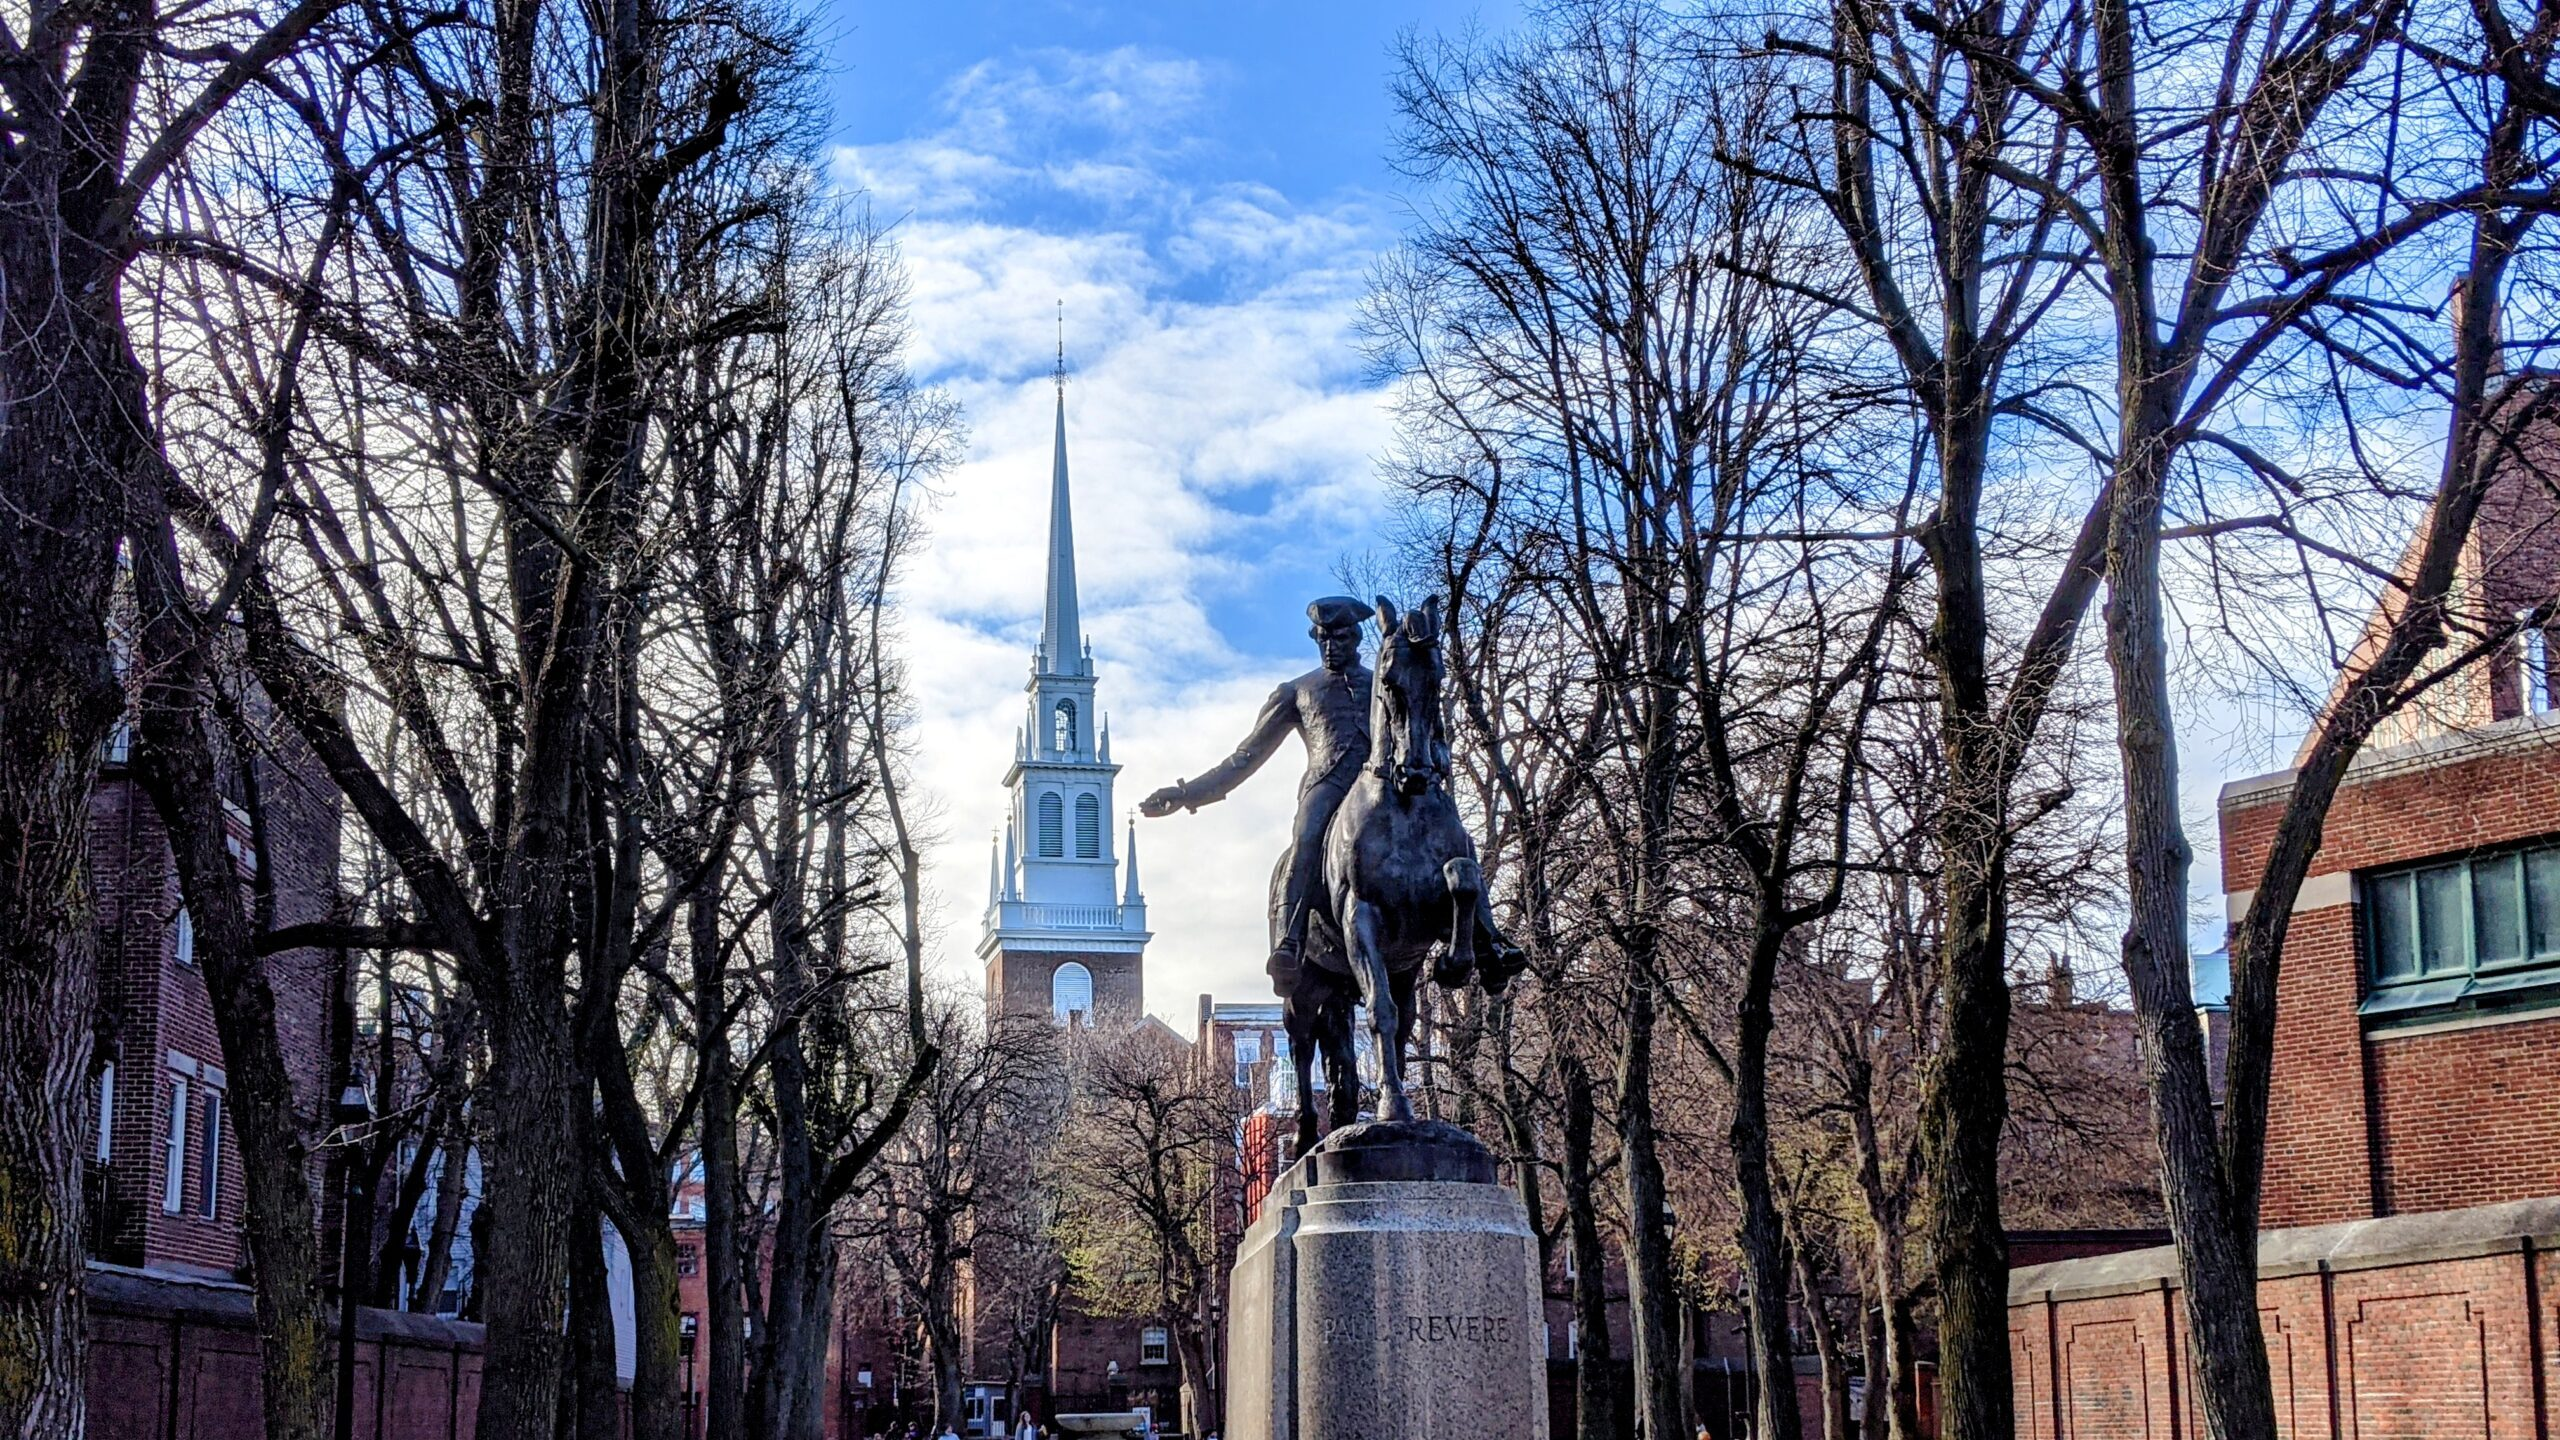 A public square with a state of Paul Revere and the steeple of a church visible in the background.